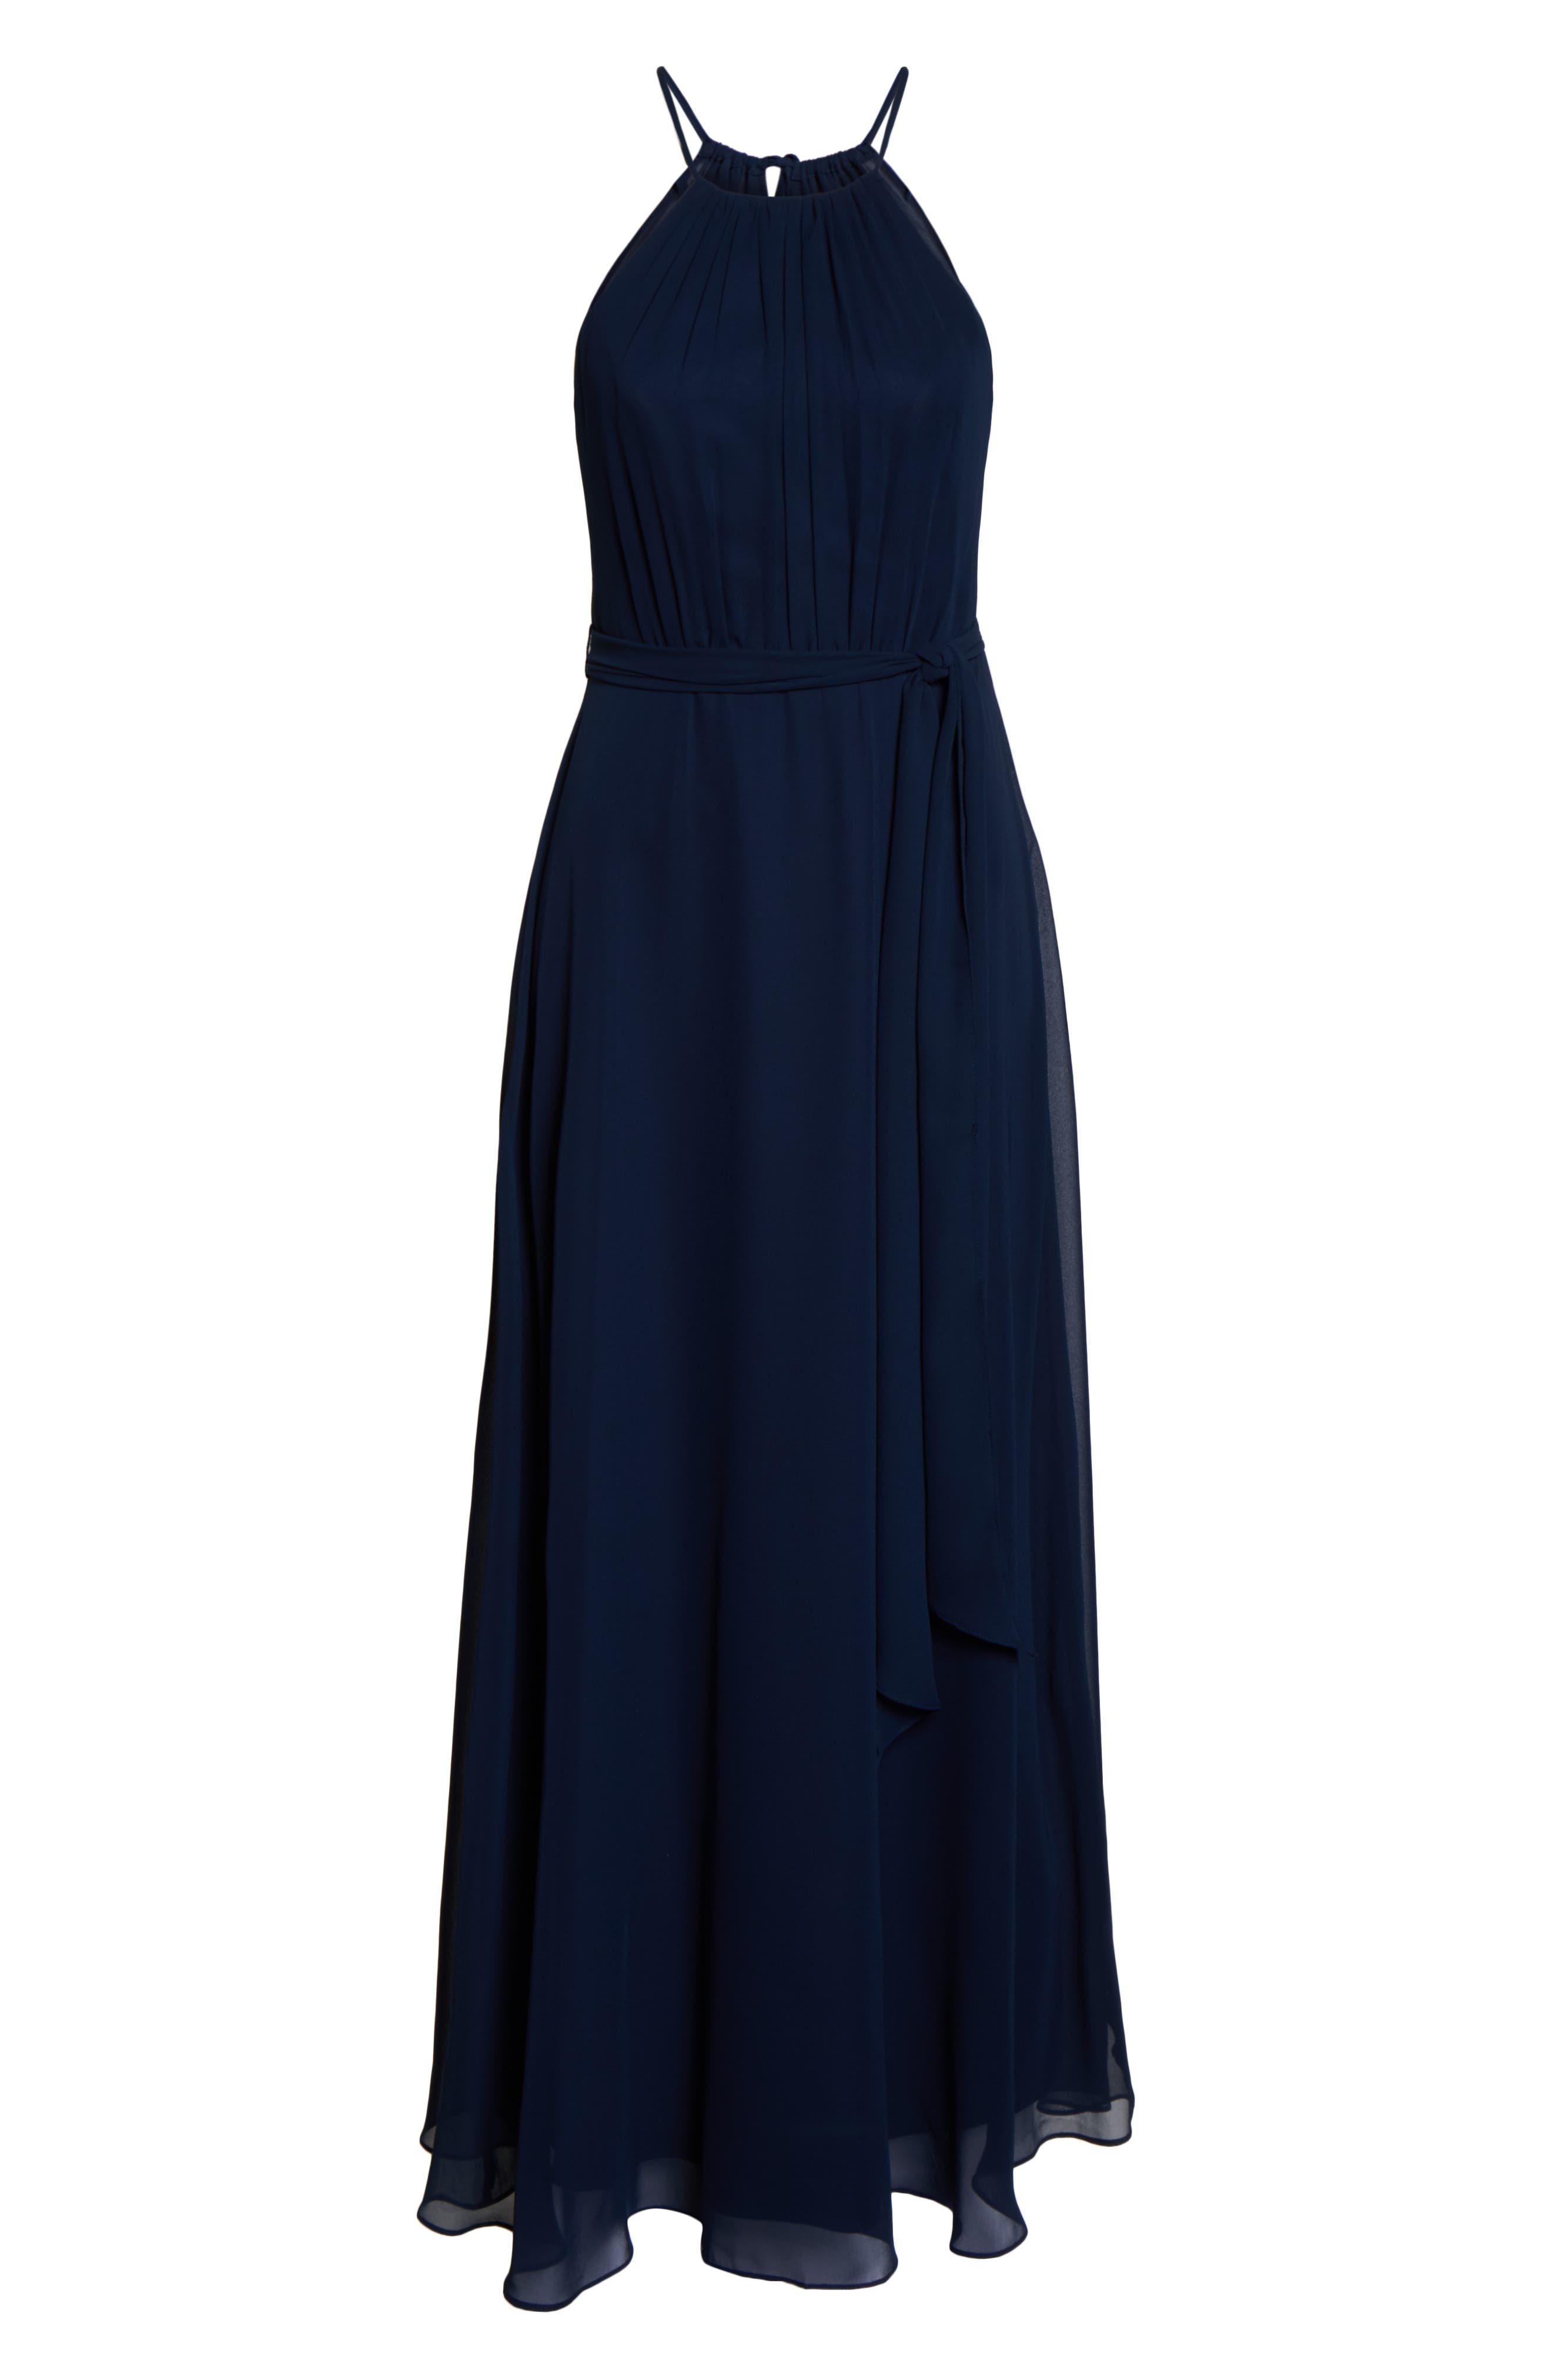 #LEVKOFF, Halter Neck Tie Detail Chiffon Gown, Alternate thumbnail 5, color, NAVY